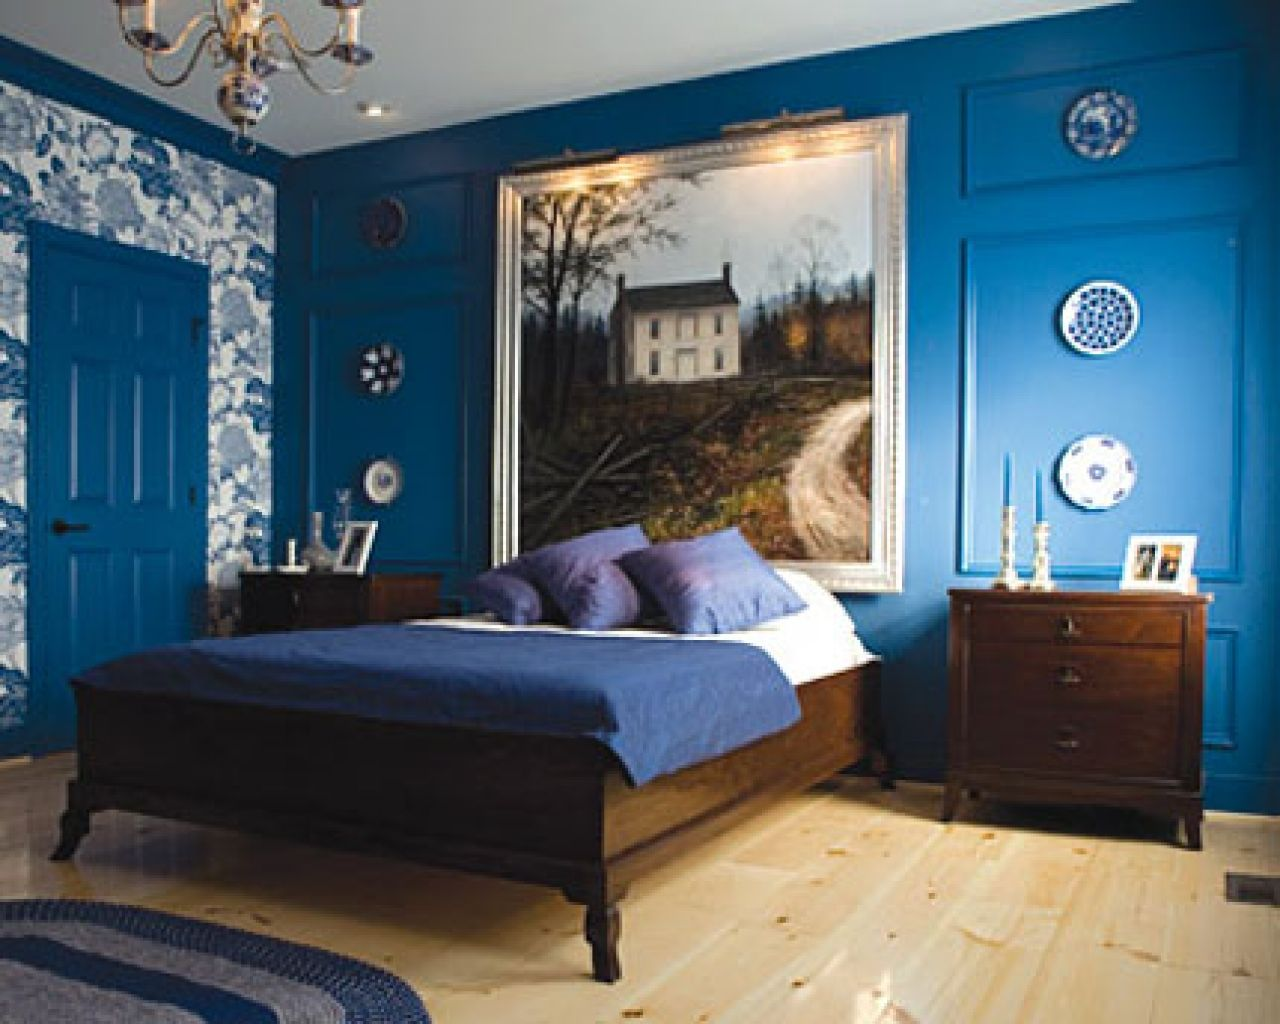 Bedroom design ideas blue - Bedroom Painting Design Ideas Pretty Natural Bedroom Paint Ideas Cute Blue Wall Idp Interior Design